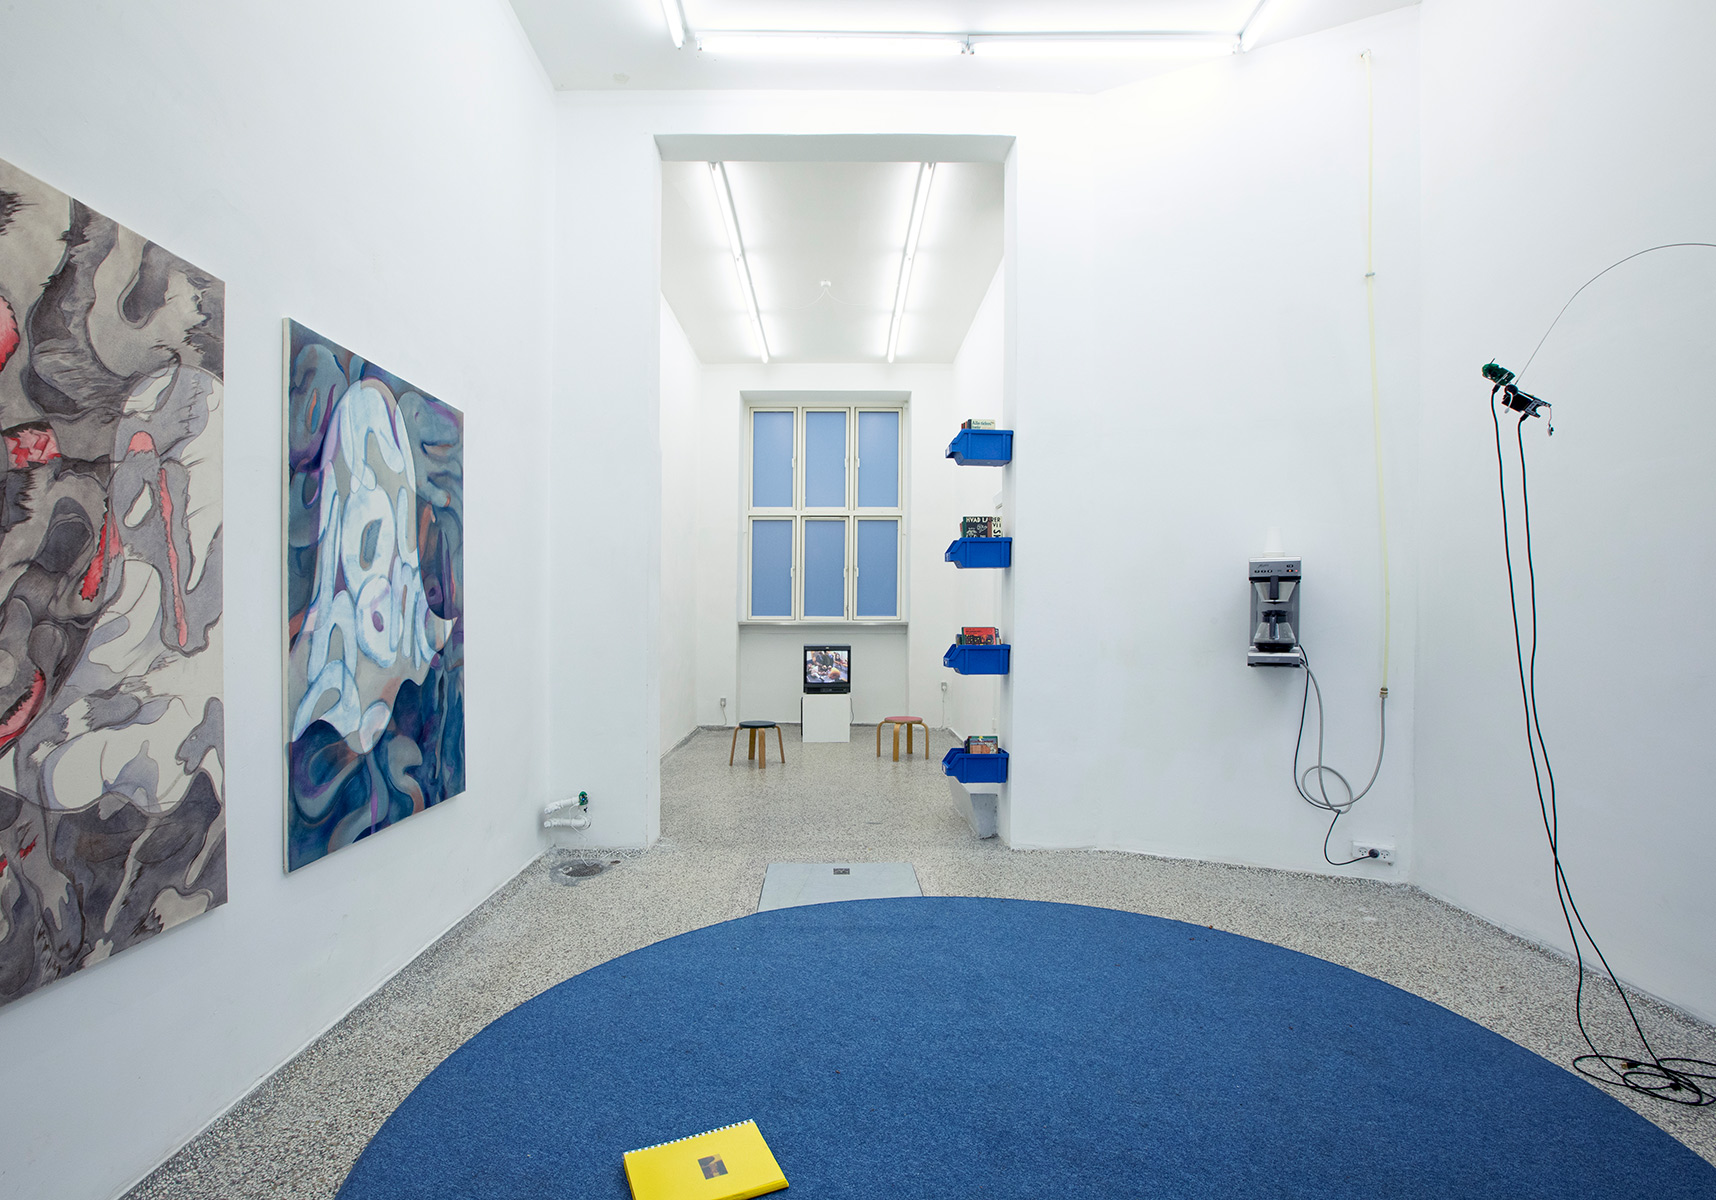 Janey, Installation View